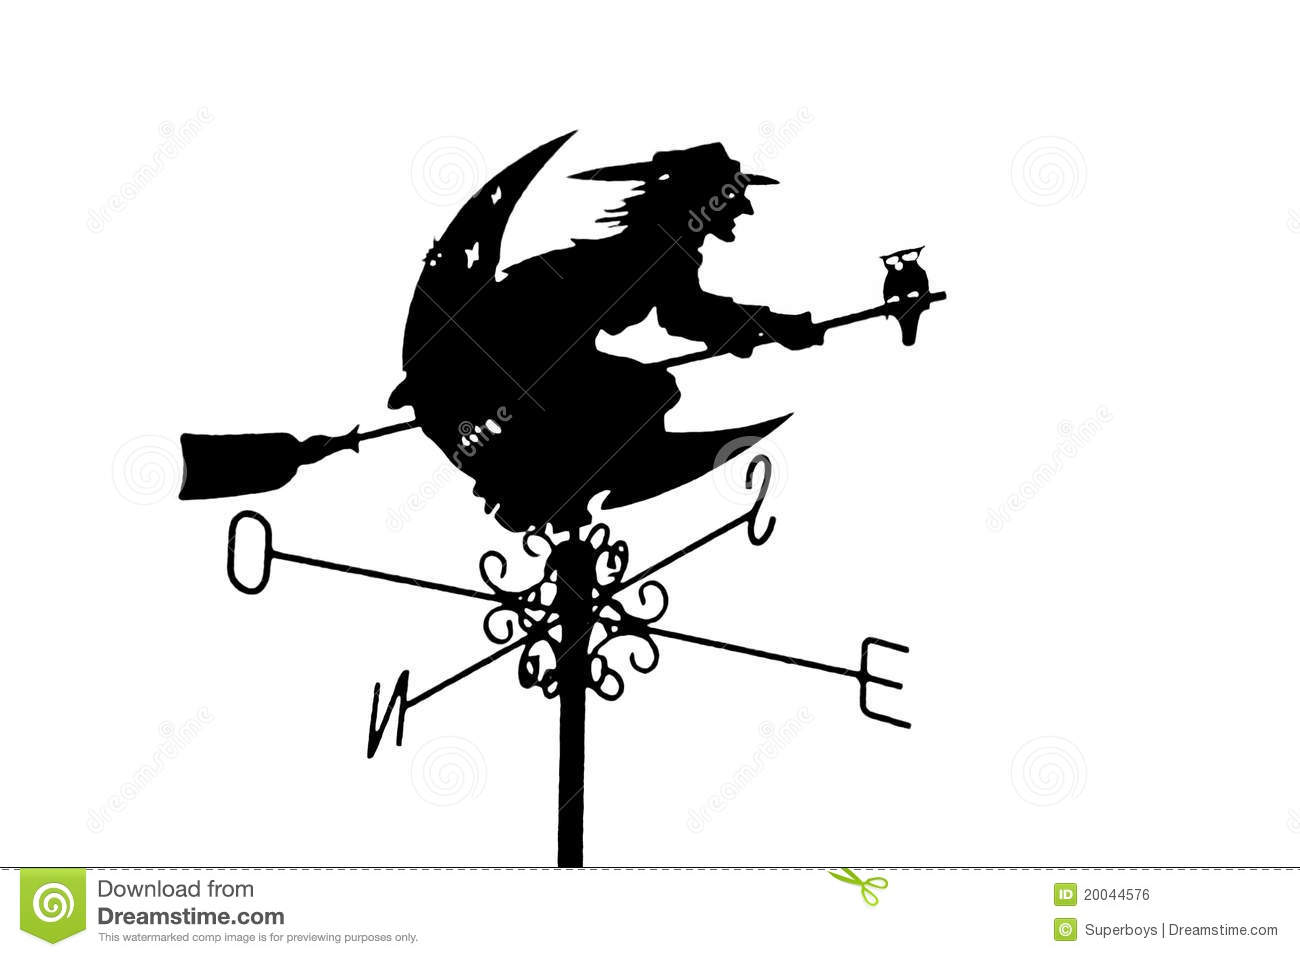 Flying witch on sky stock photo  Image of spell, woman - 20044576